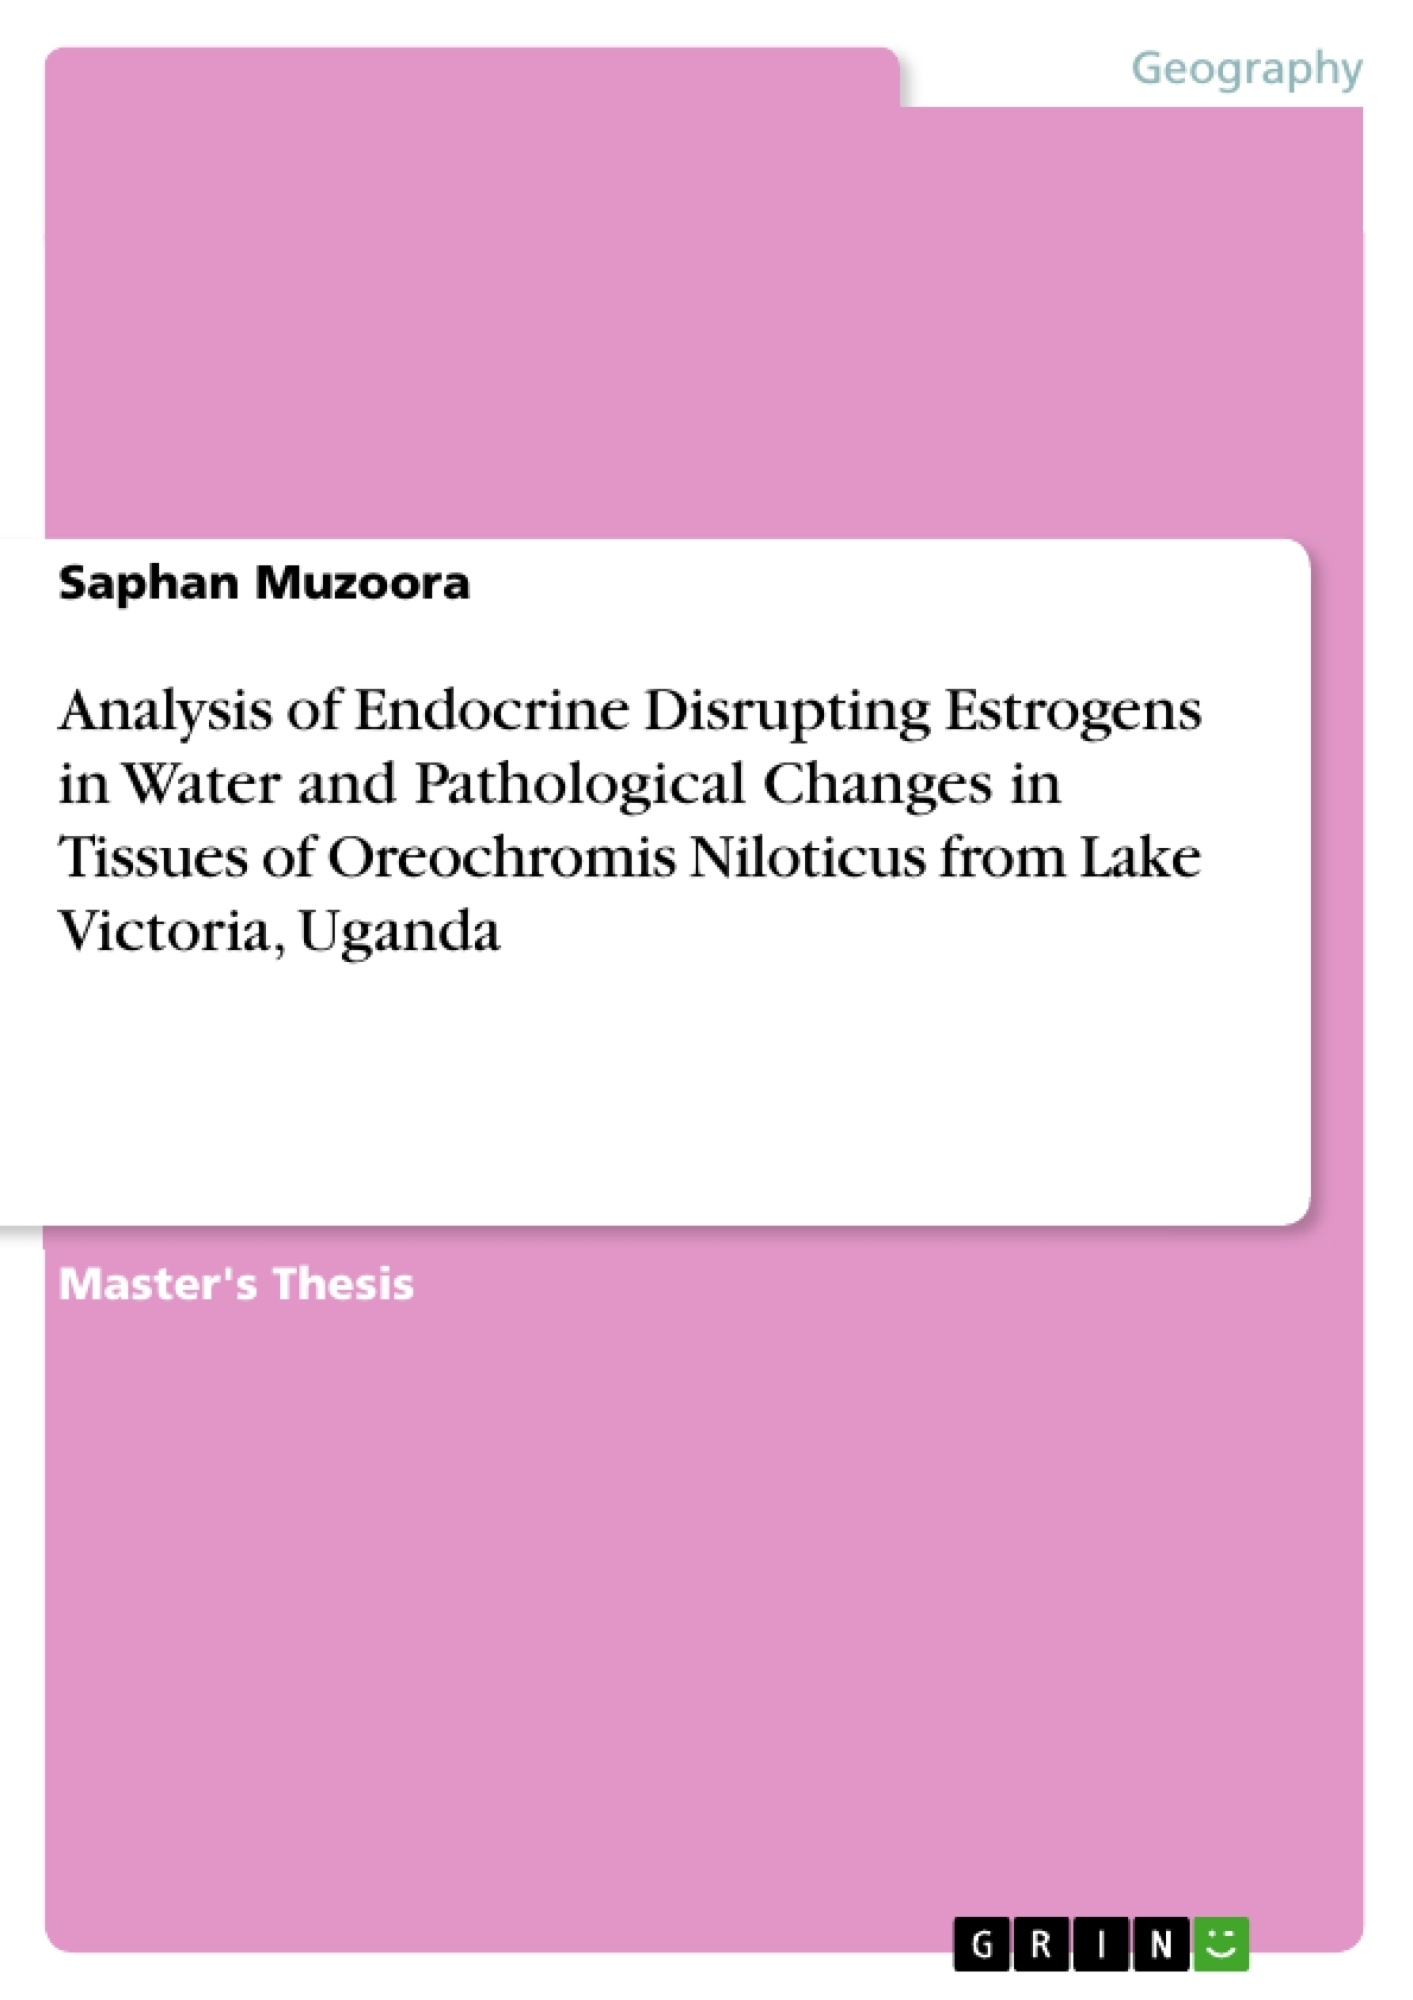 Title: Analysis of Endocrine Disrupting Estrogens in Water and Pathological Changes in Tissues of Oreochromis Niloticus from Lake Victoria, Uganda